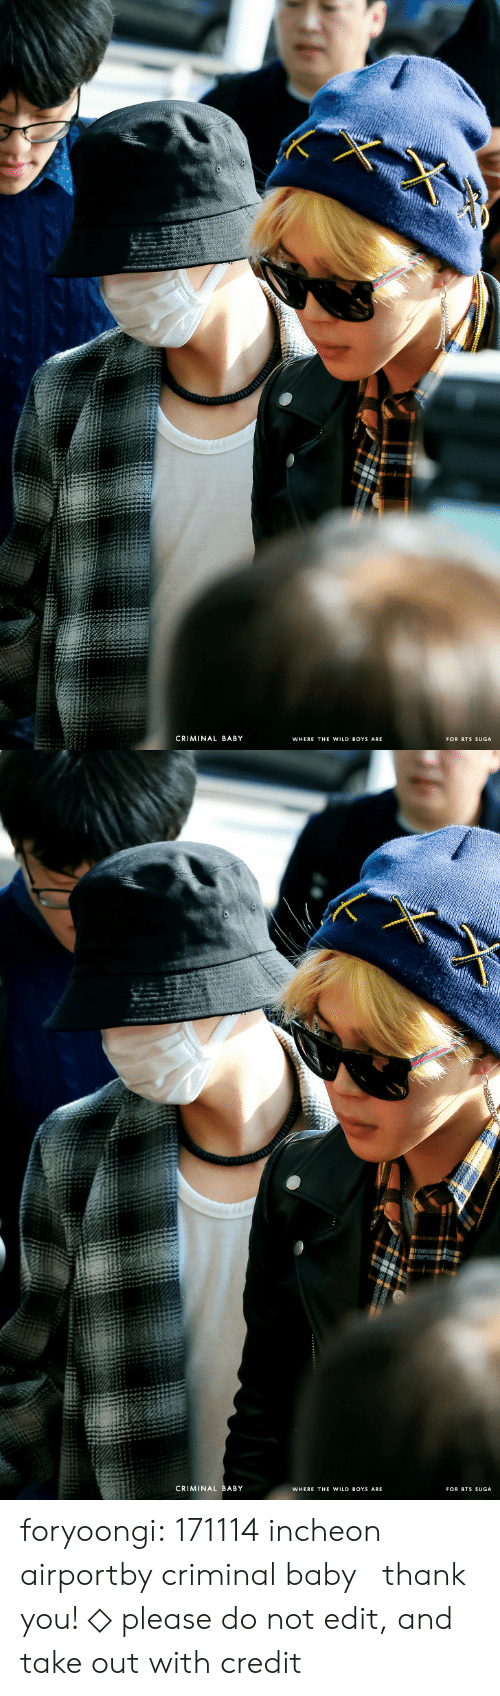 Tumblr, Twitter, and Thank You: CRIMINAL BABY  WHERE THE WILD BOYS ARE  FOR BTS SUGA   CRIMINAL BABY  WHERE THE WILD BOYS ARE  FOR BTS SUGA foryoongi:  171114 incheon airportby criminal baby。 thank you! ◇ please do not edit, and take out with credit。